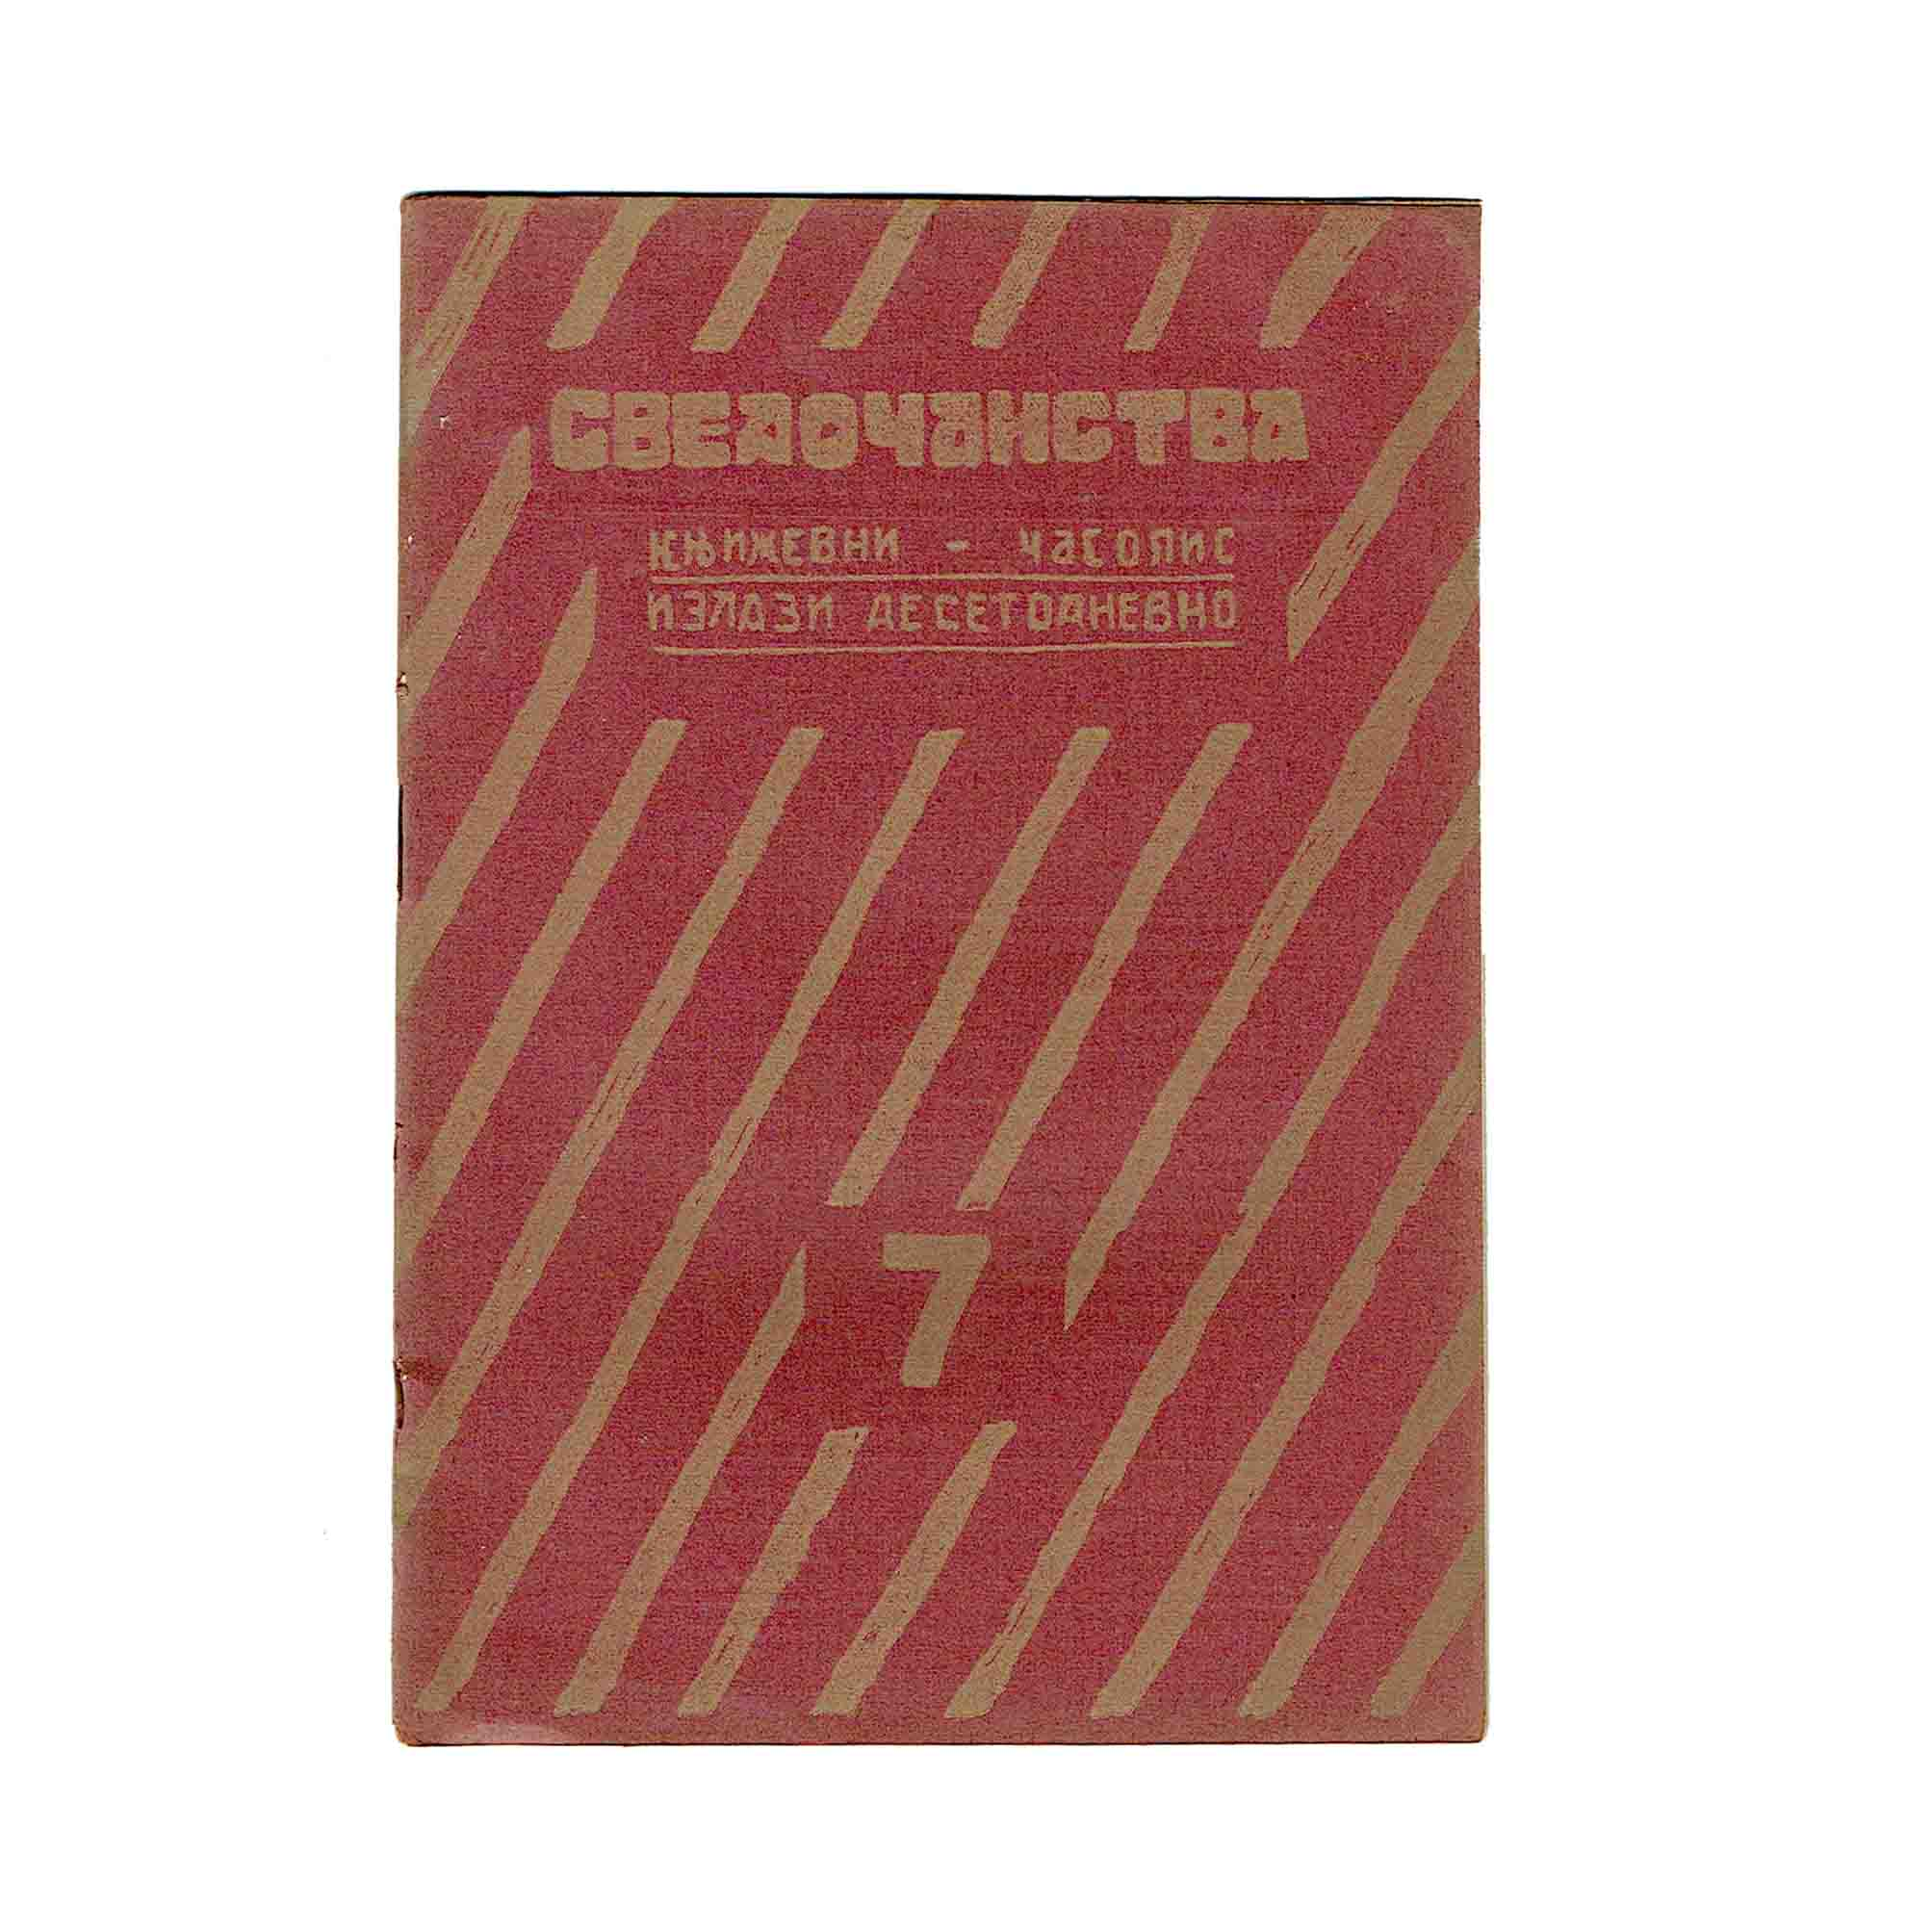 Svedocanstva 7 1925 Cover recto frei N